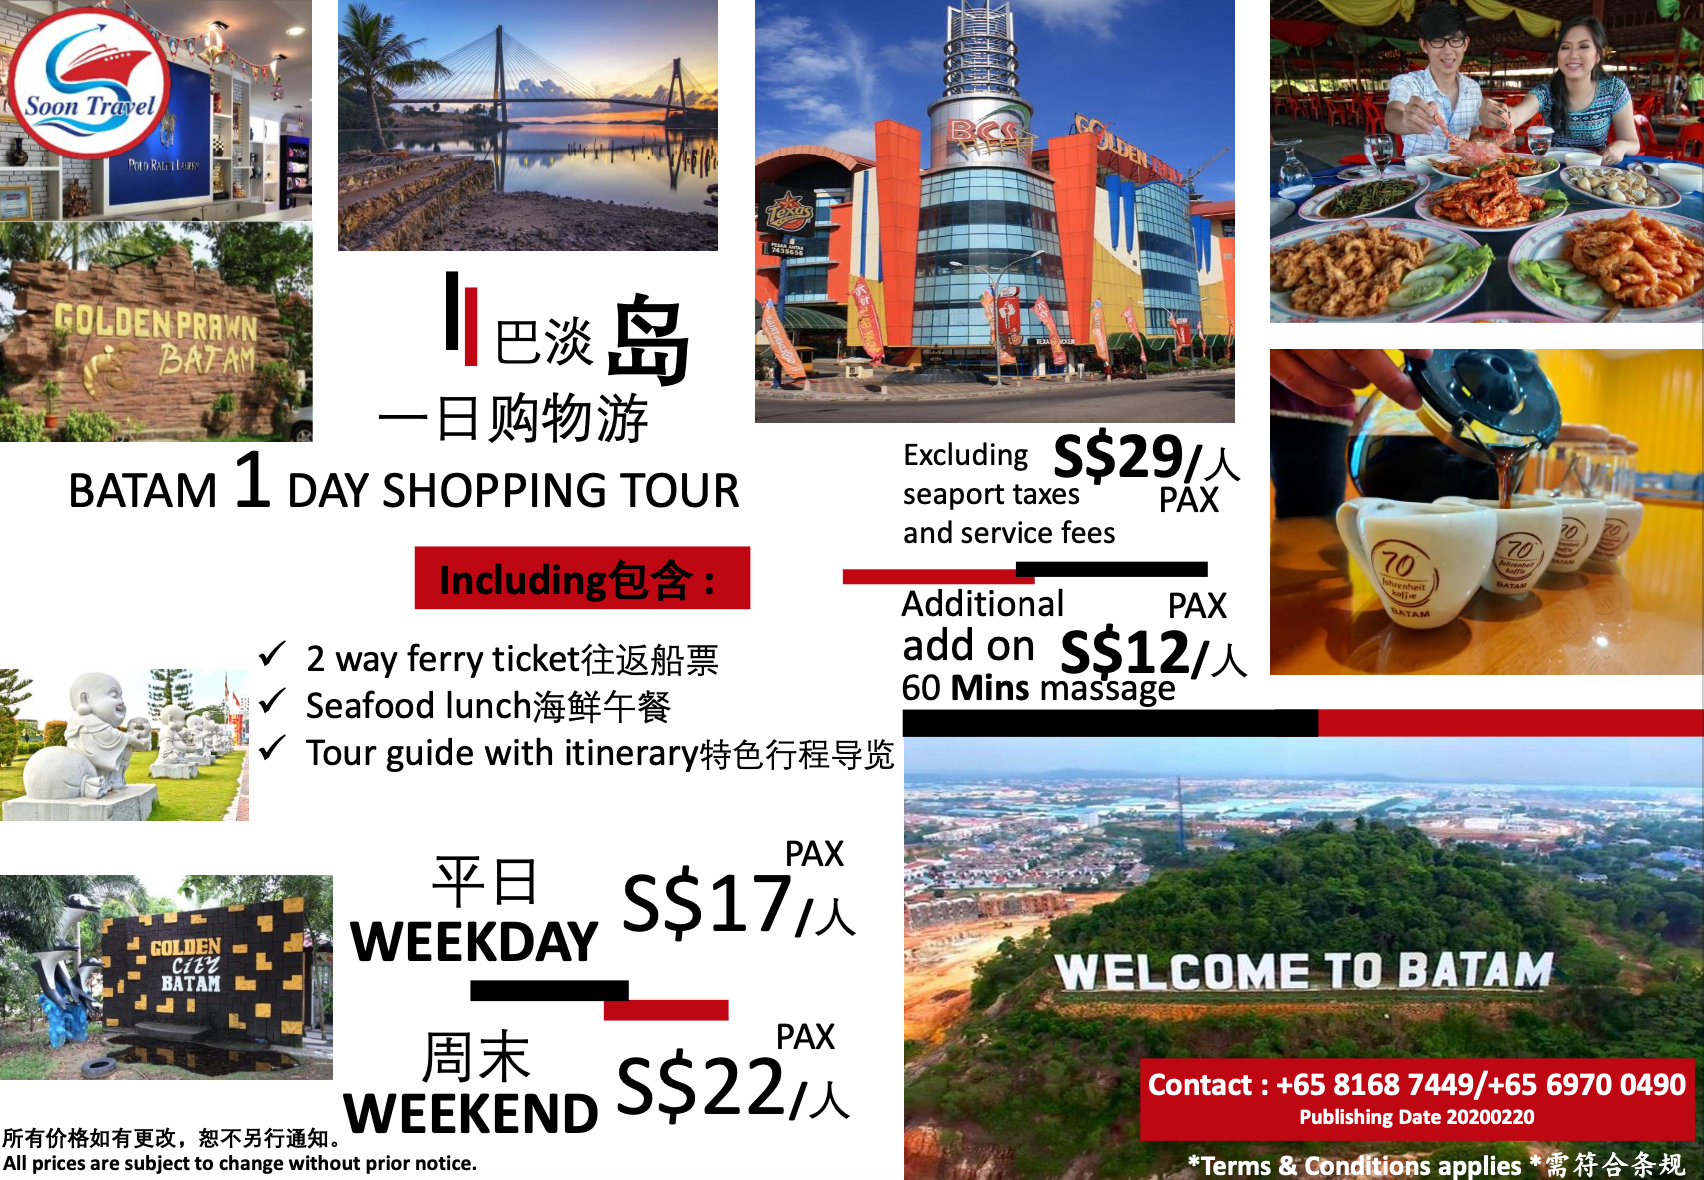 BATAM 1 DAY SHOPPING TOUR